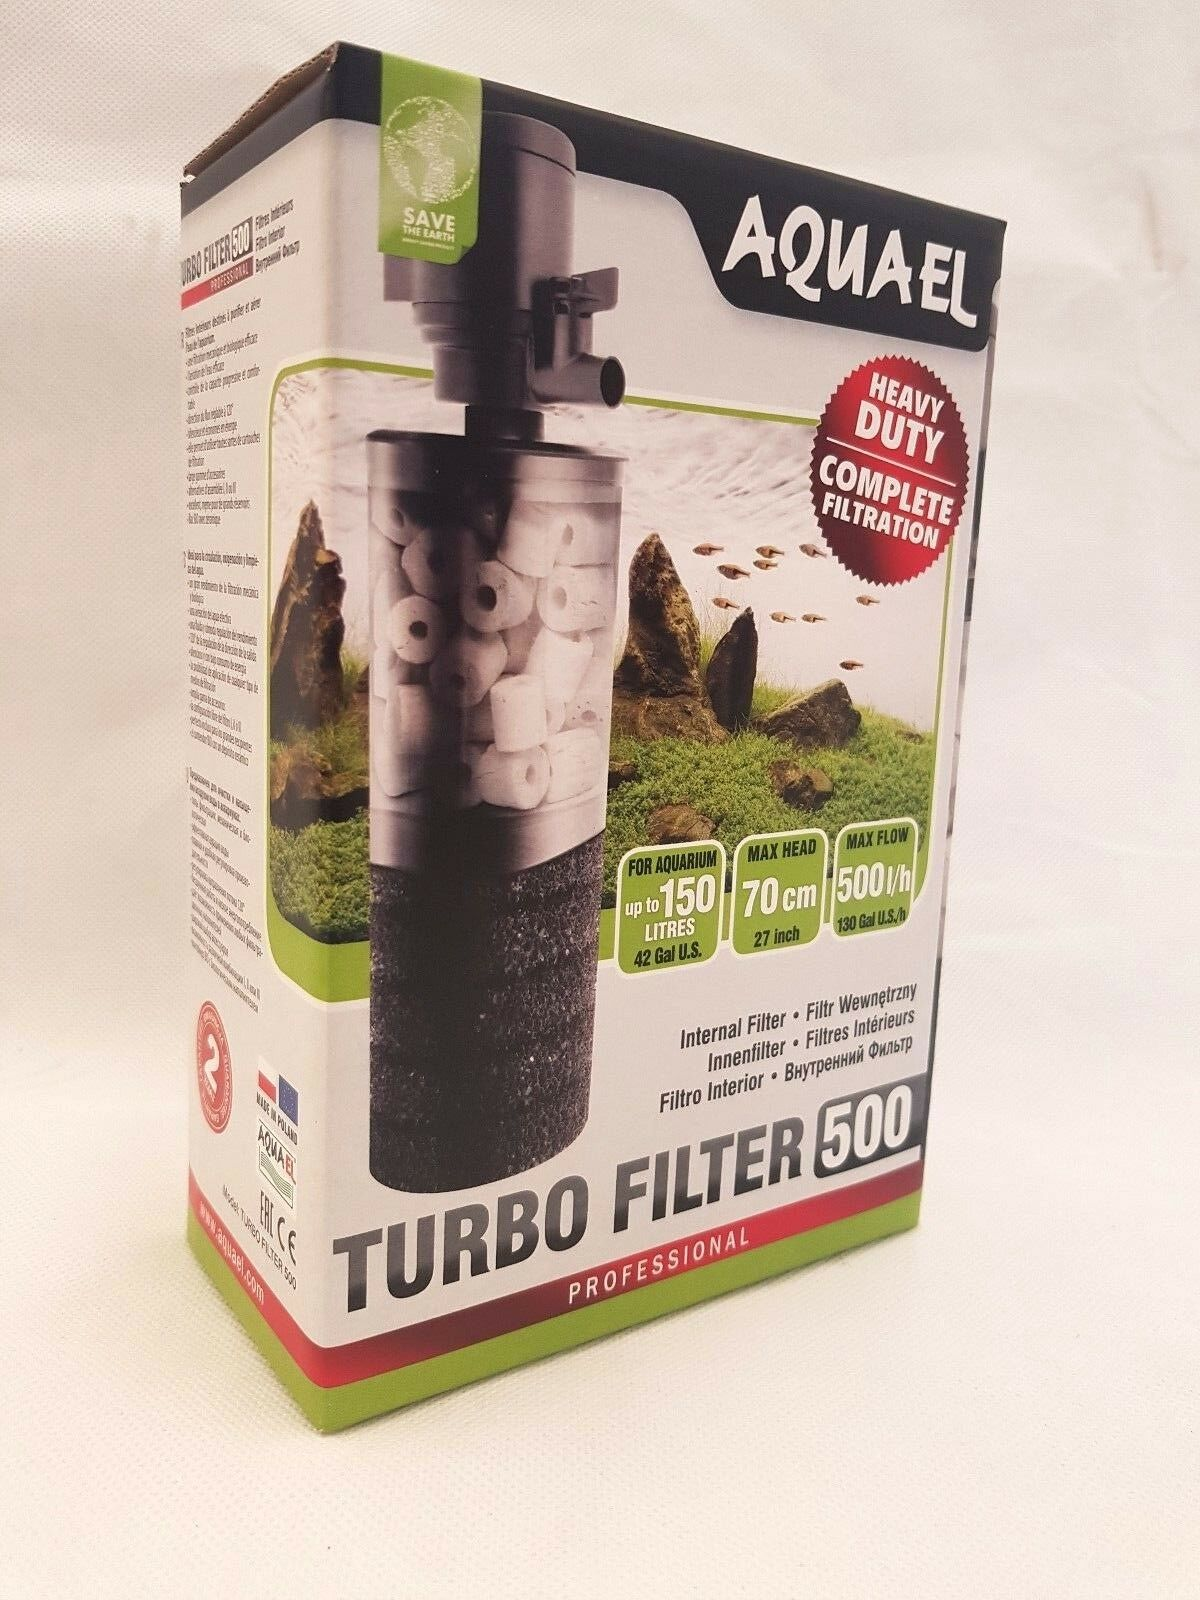 Aquael Turbo Filter 500 Aquarium -150l Innenfilter BIO Tauchfilter Filter Pumpe